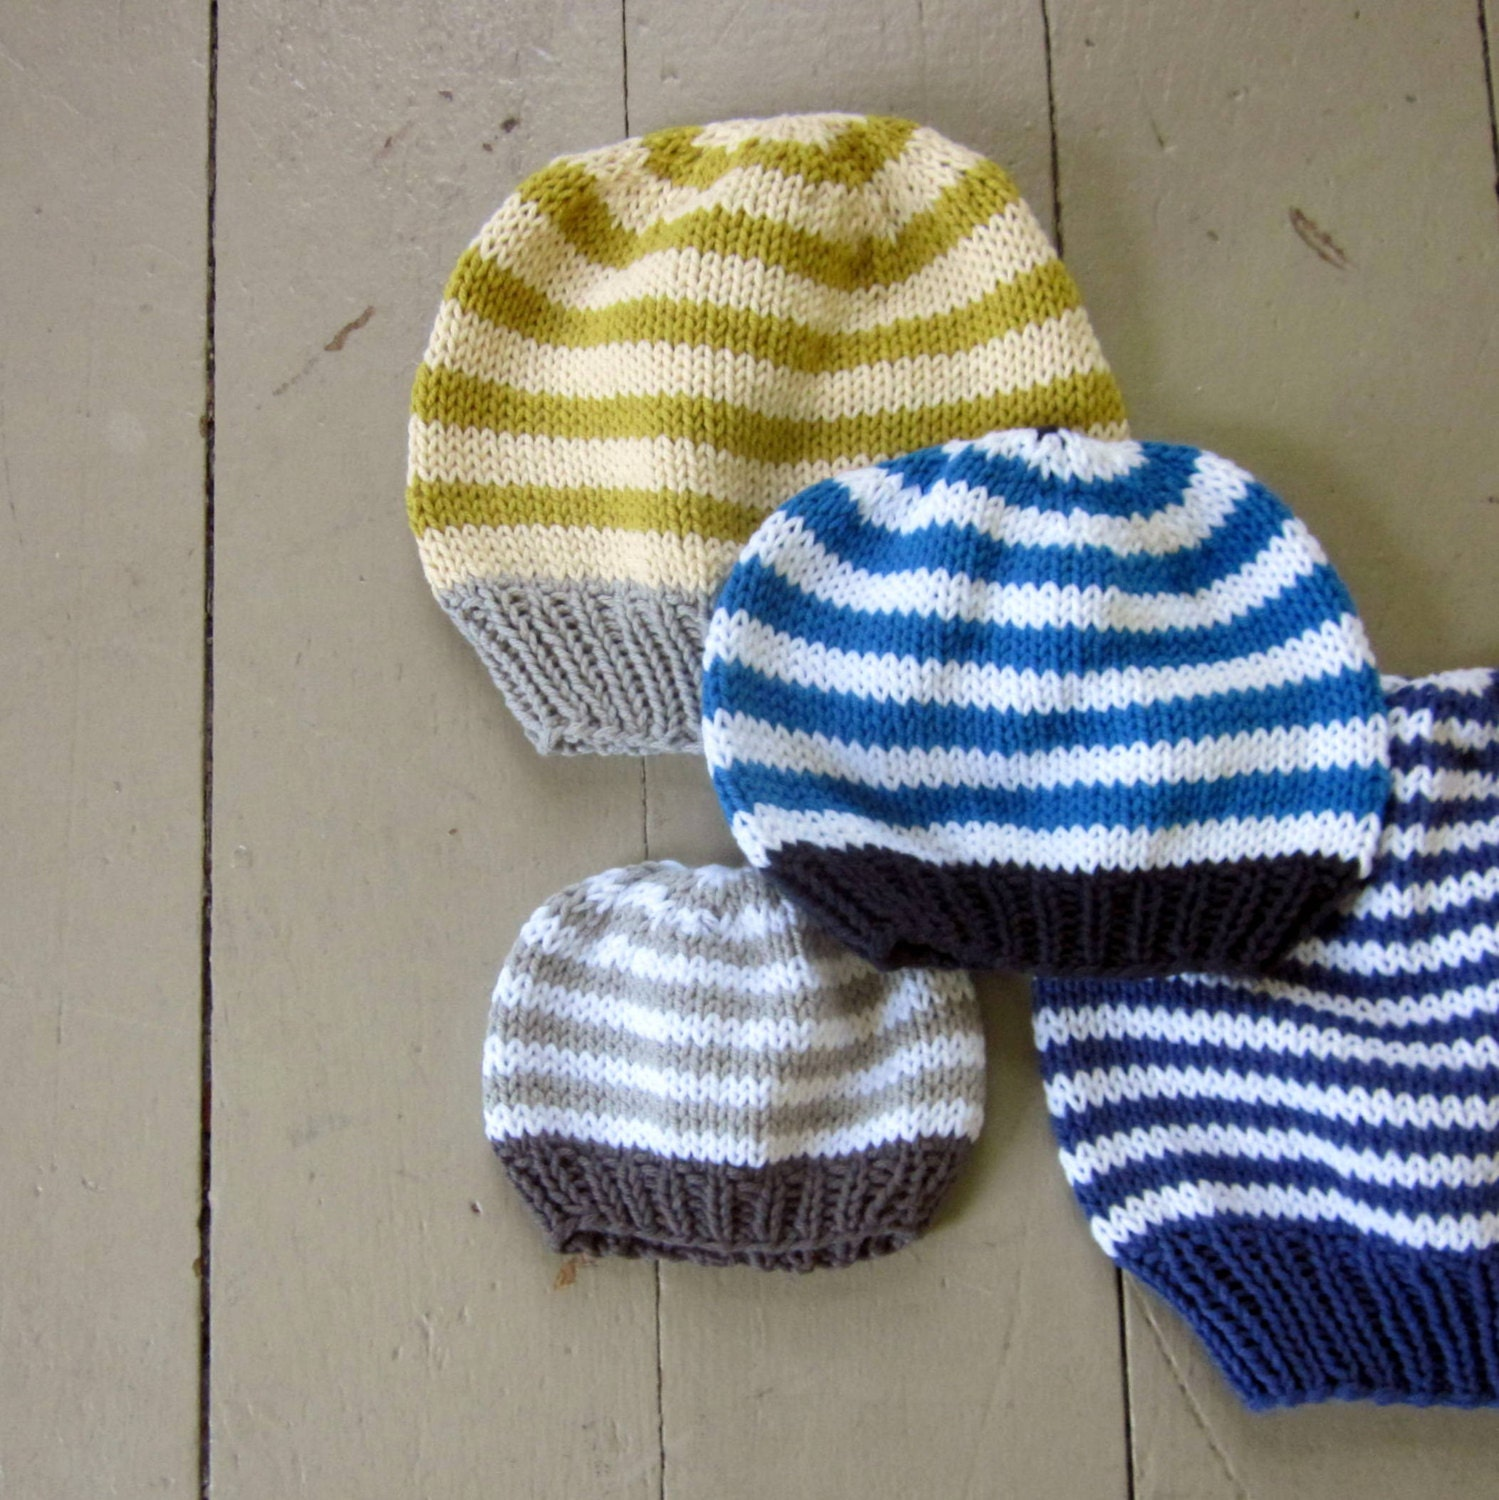 childrens knit hat designs